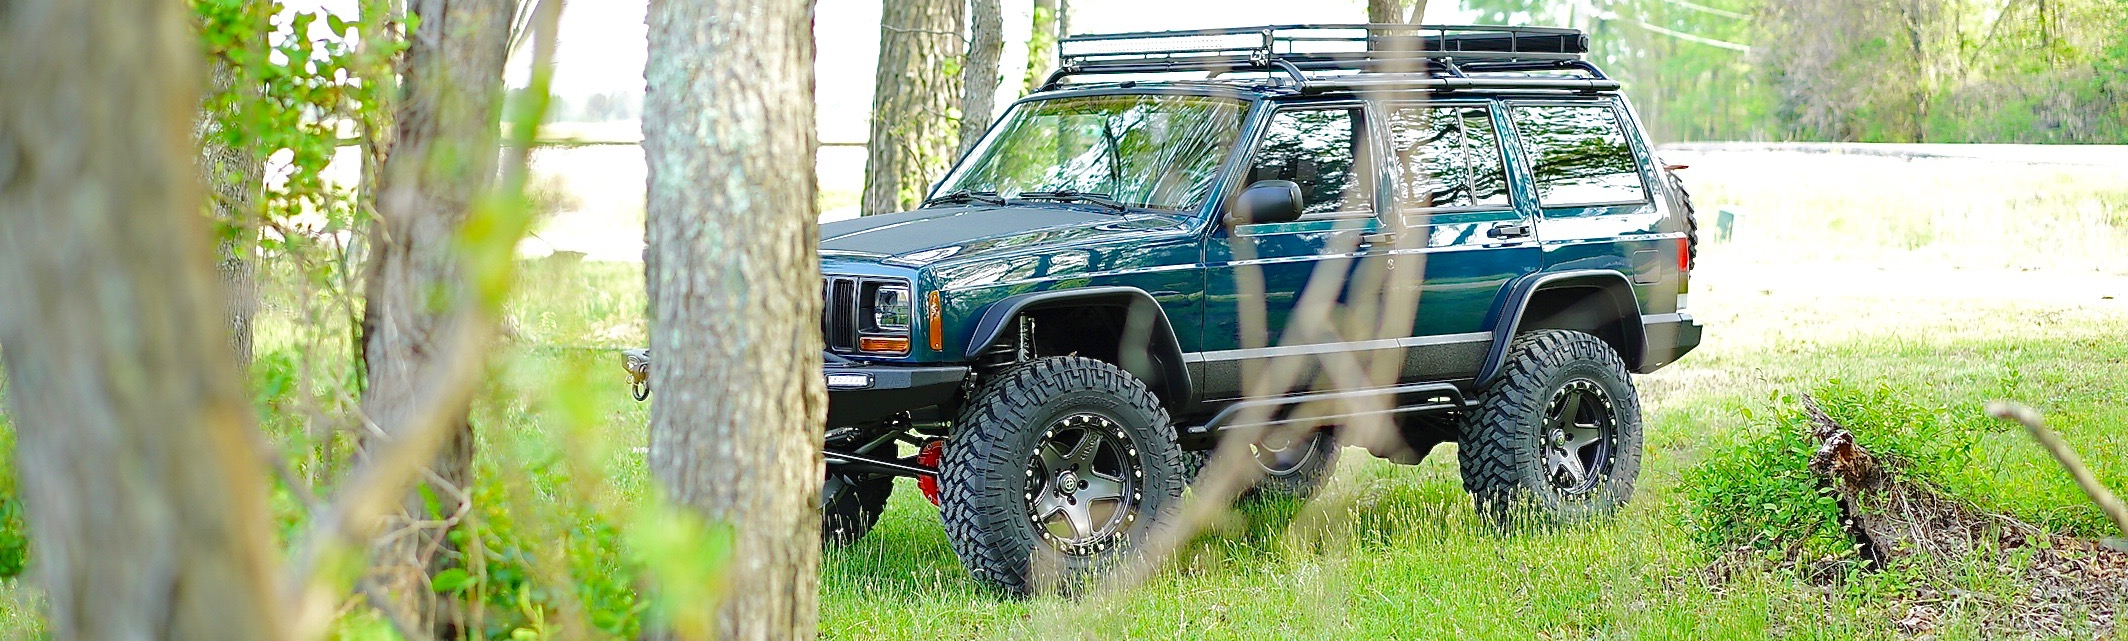 small resolution of lifted jeep cherokee for sale jeep cherokee xj for sale jeep cherokee lift kit